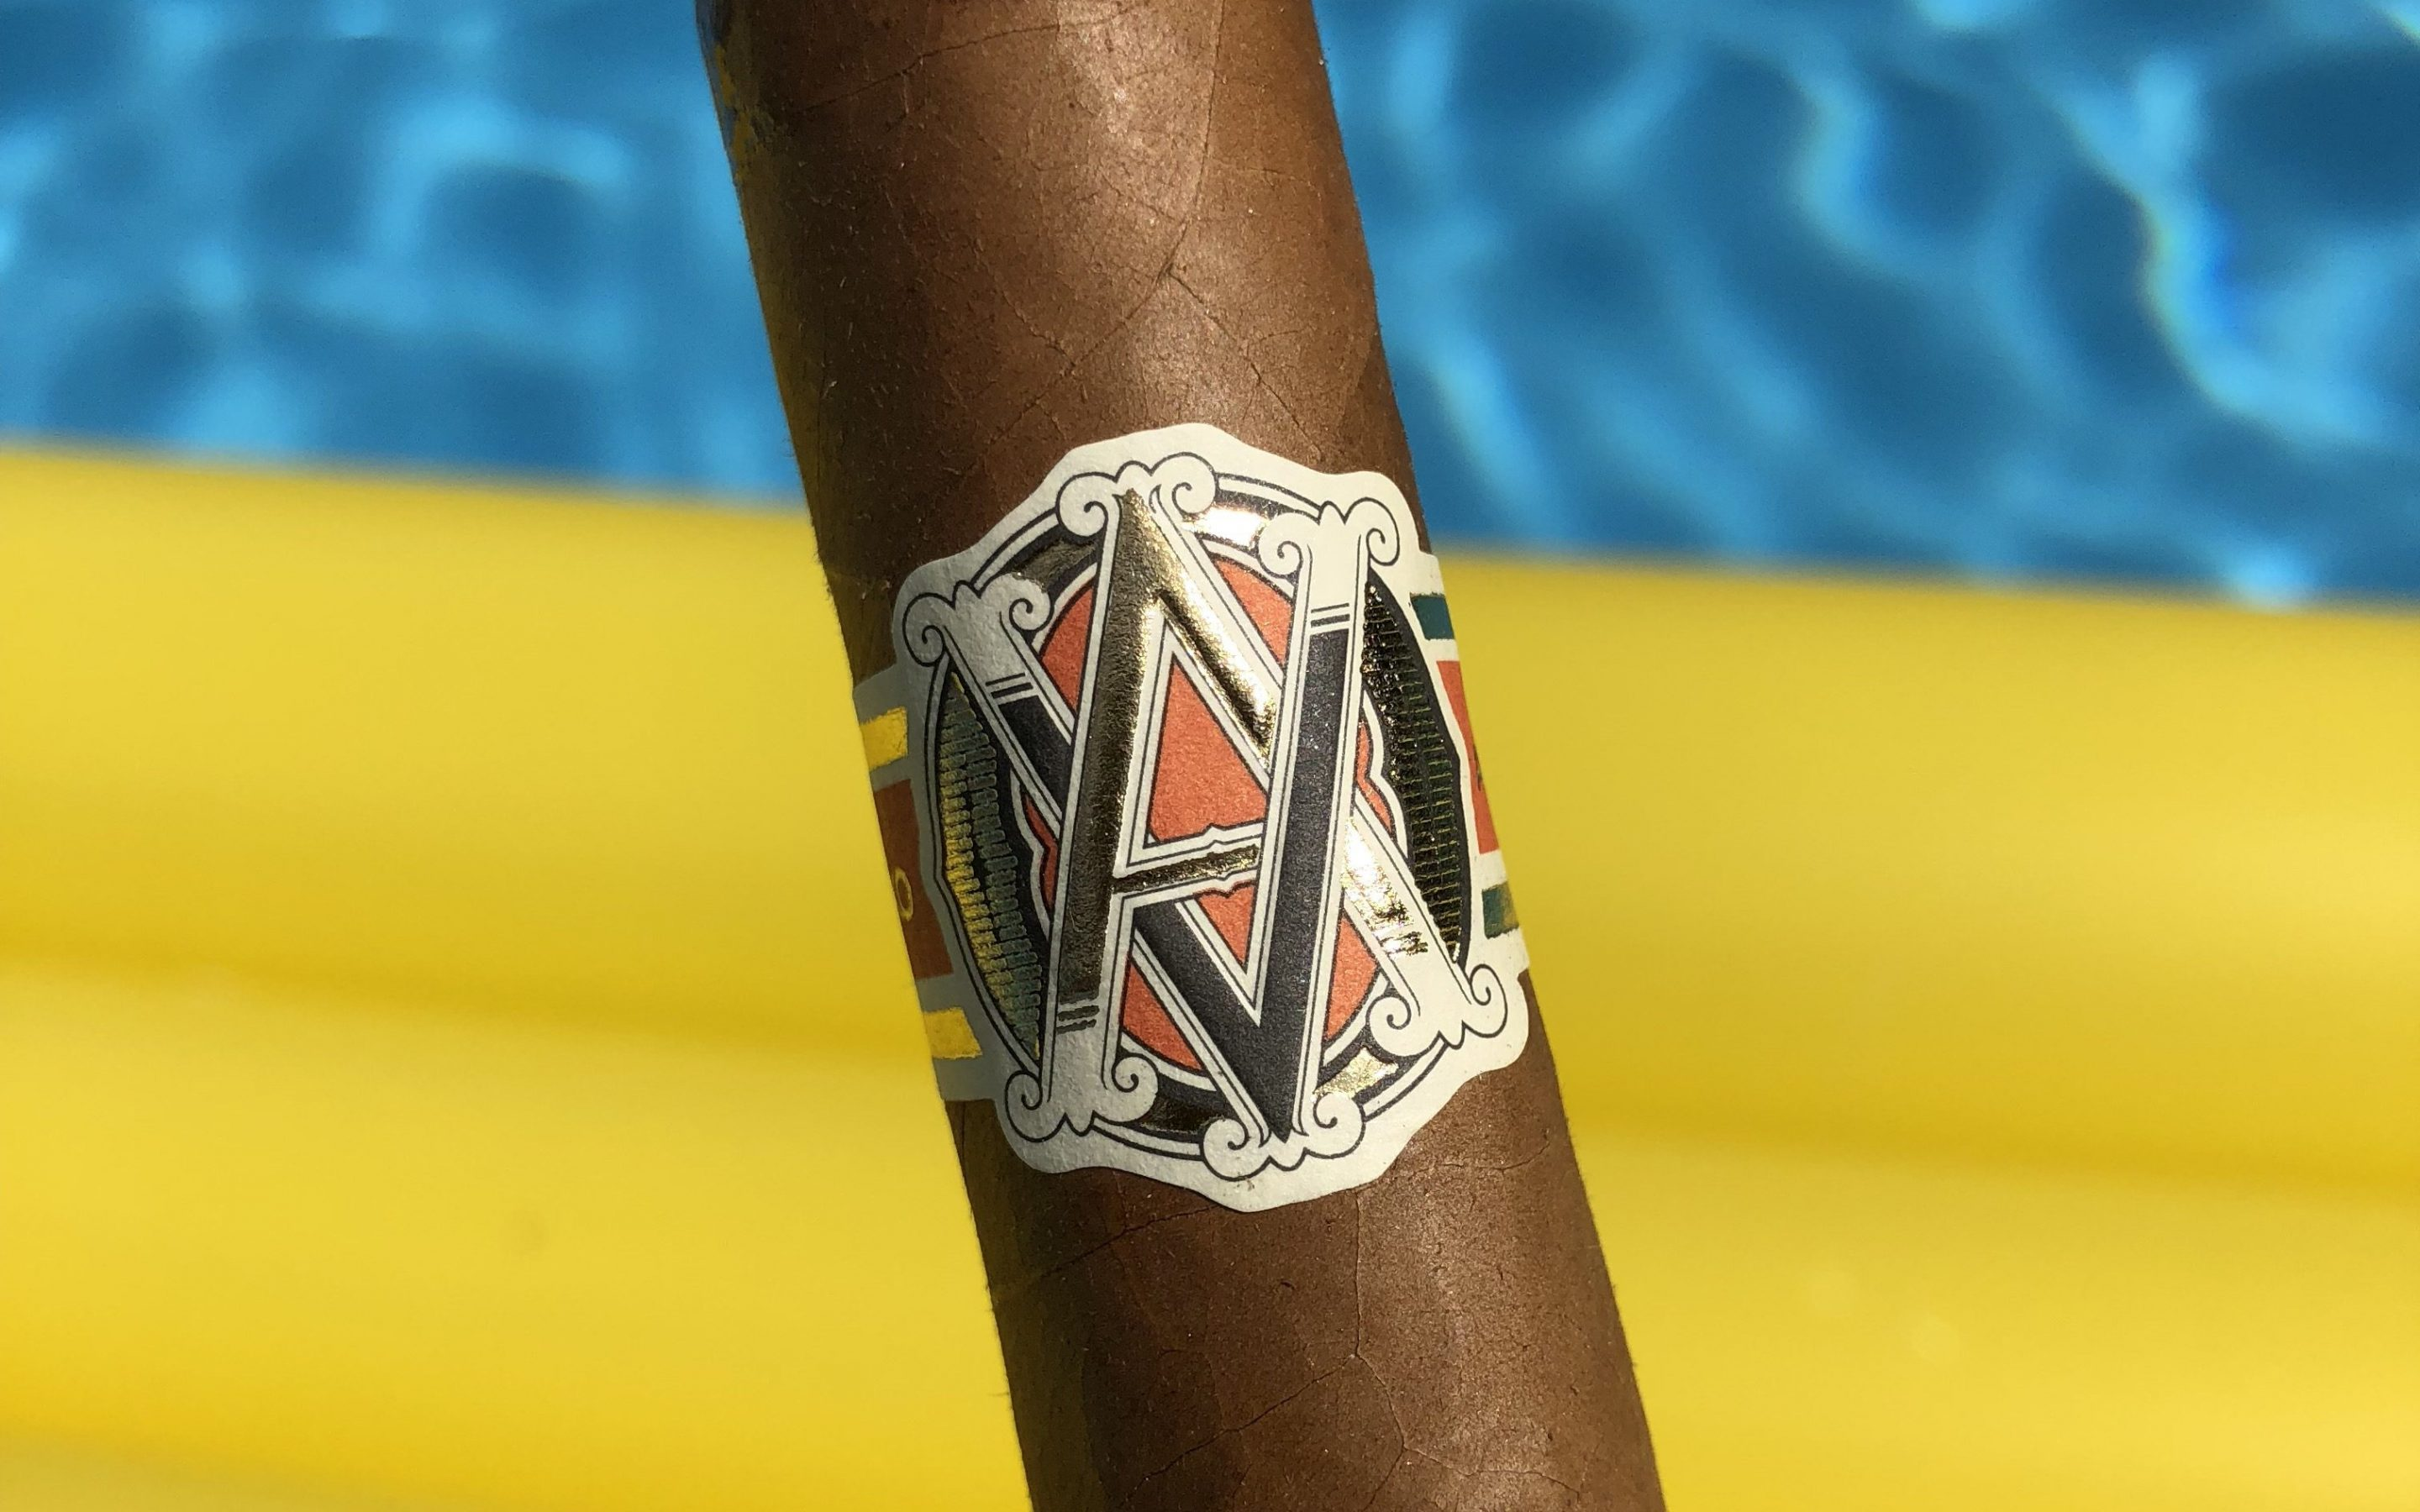 What a fine way of o start off the weekend. A little Avo XO Legato smooth creamy goodness by the pool. Really looking forward to the Avo Cigar Event later this month at Cordova Cigars #AvoXOLegato #AvoCigarLove #AvoGoodness #AvoCigars